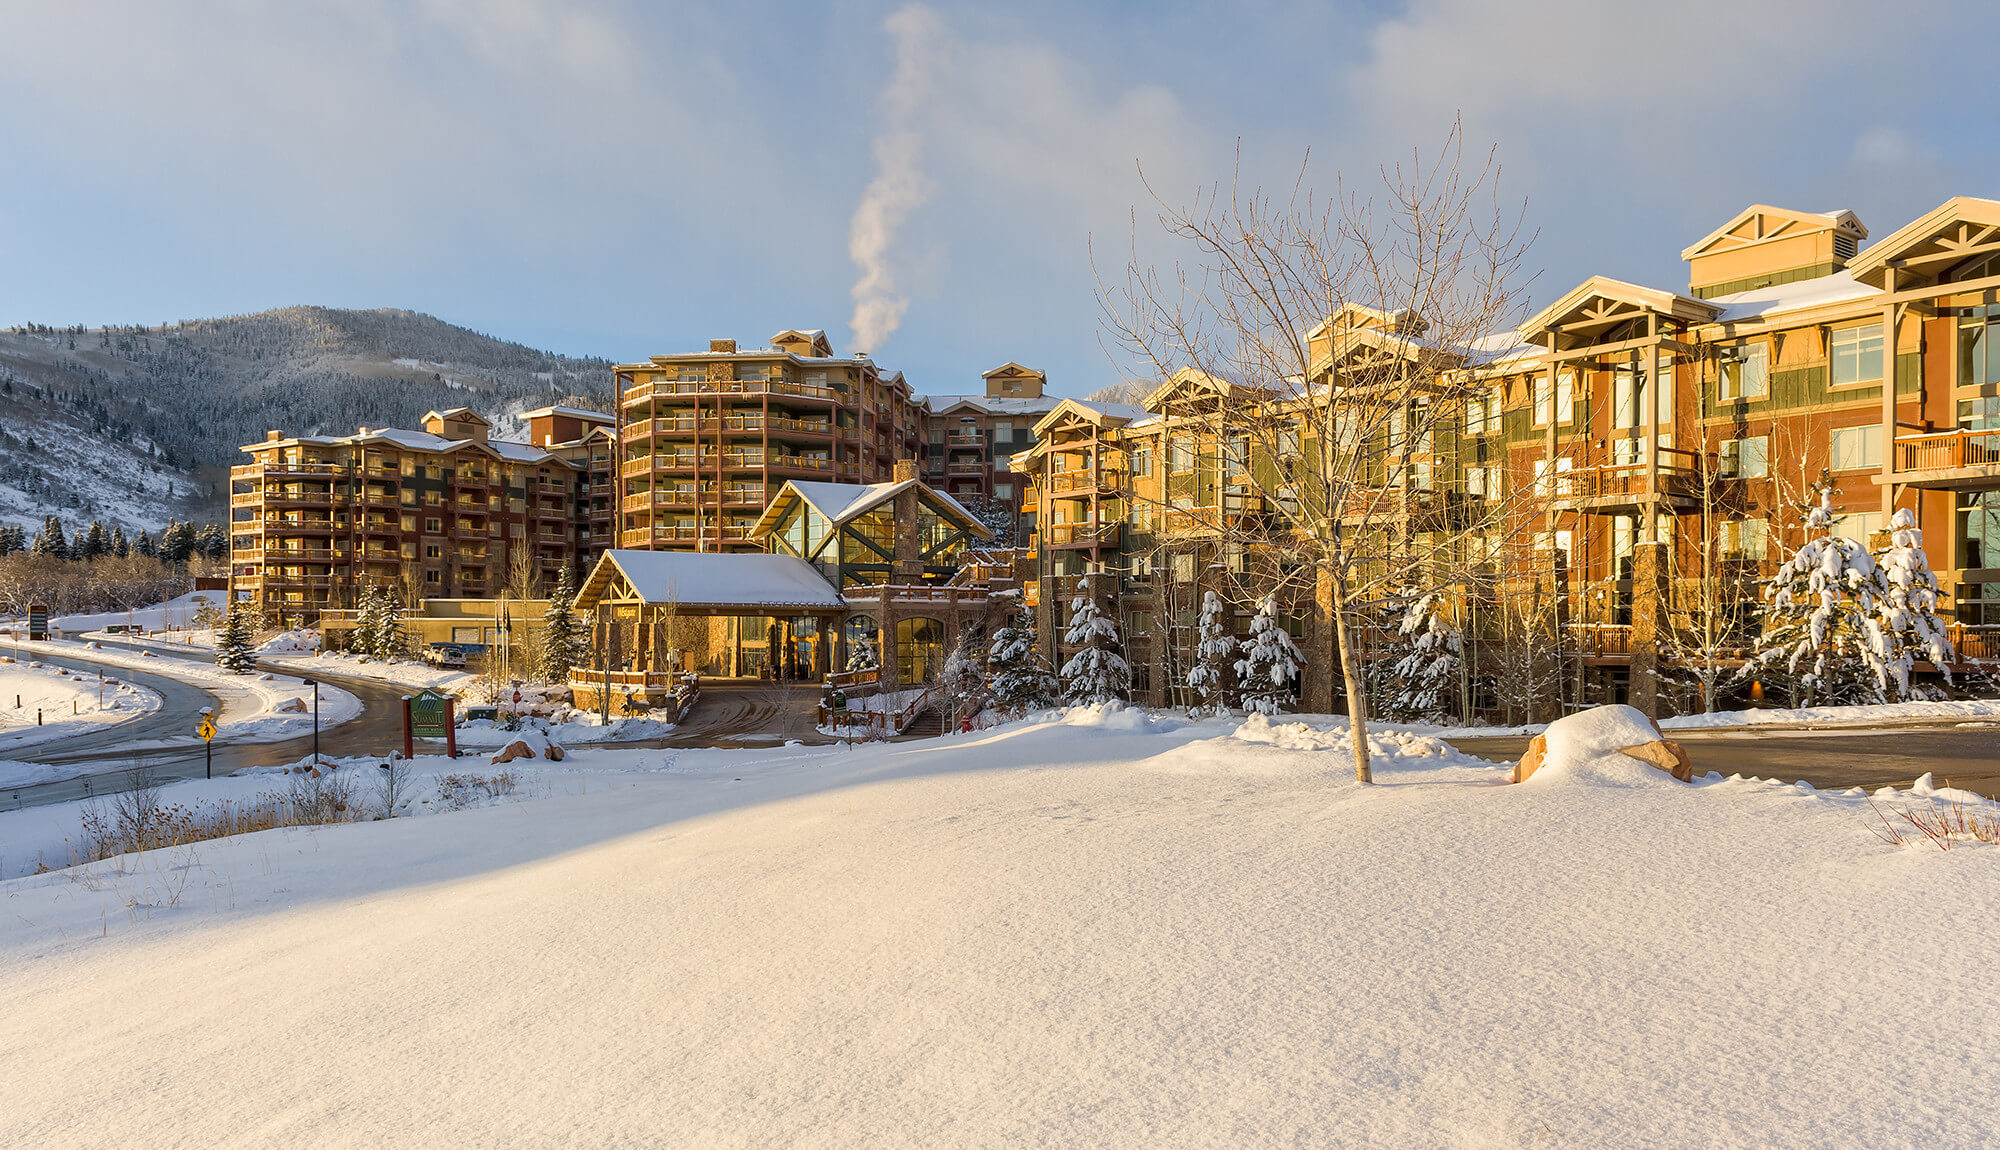 Wintry scene outside Park City resort in Utah | Westgate Park City Resort & Spa | Westgate Resorts